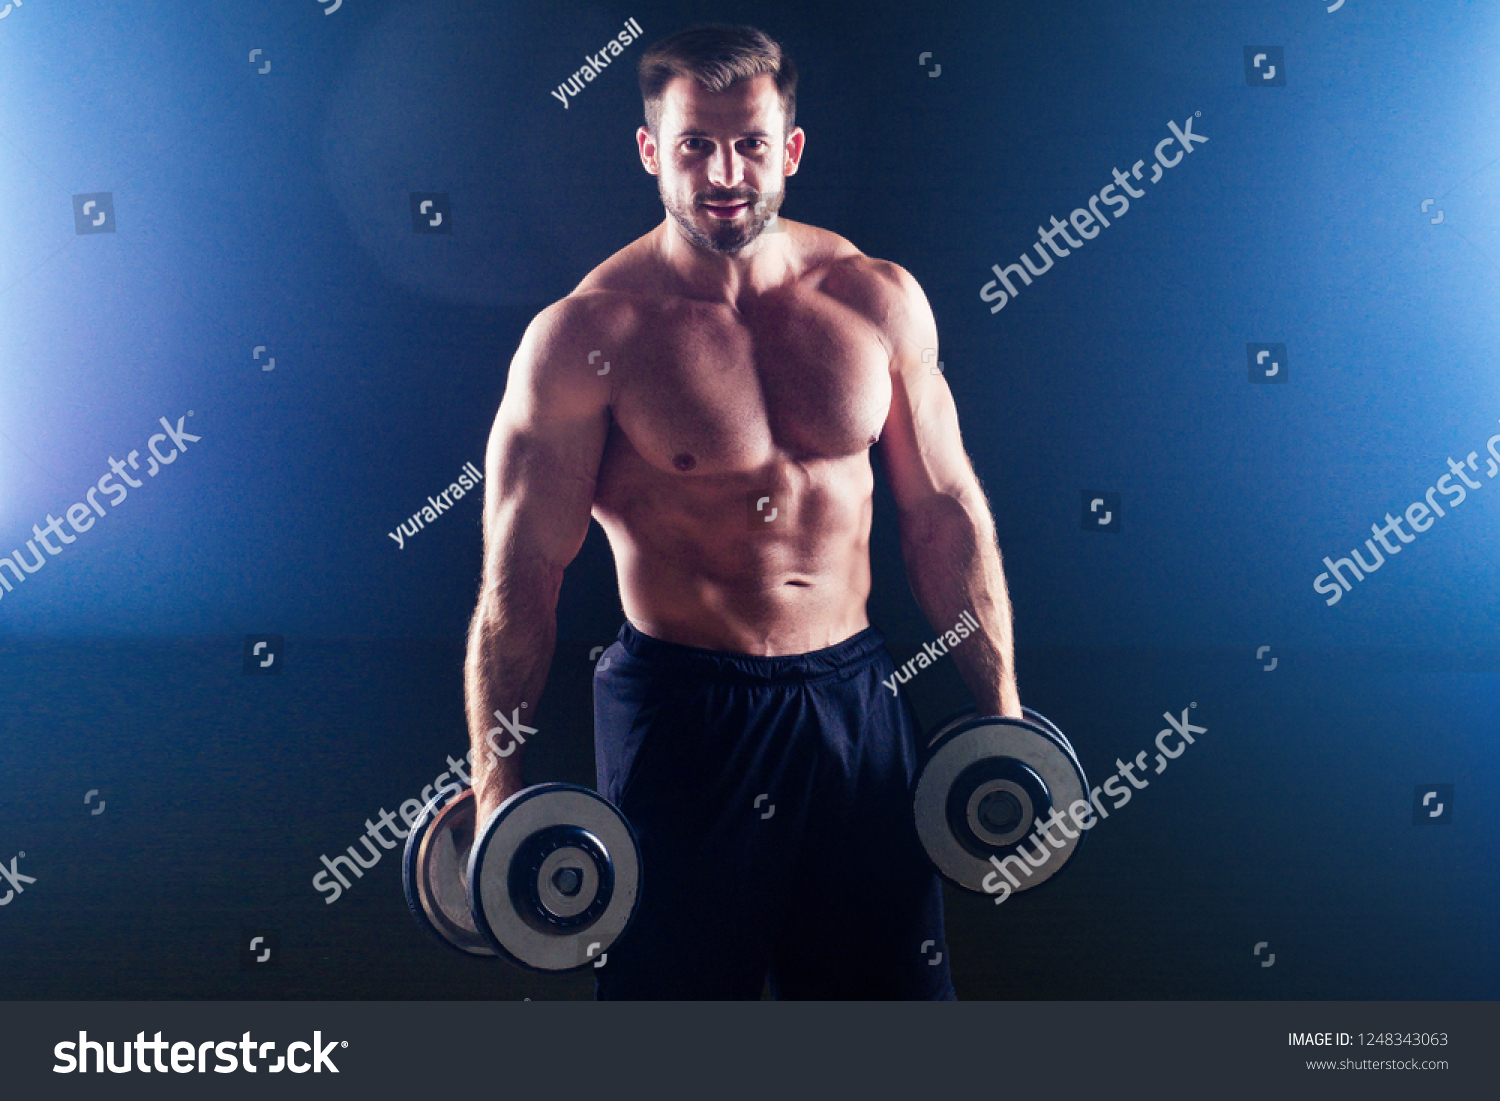 Muscular bodybuilder male fitness model perfect muscles six pack abs and  bare nude chest doing exercises